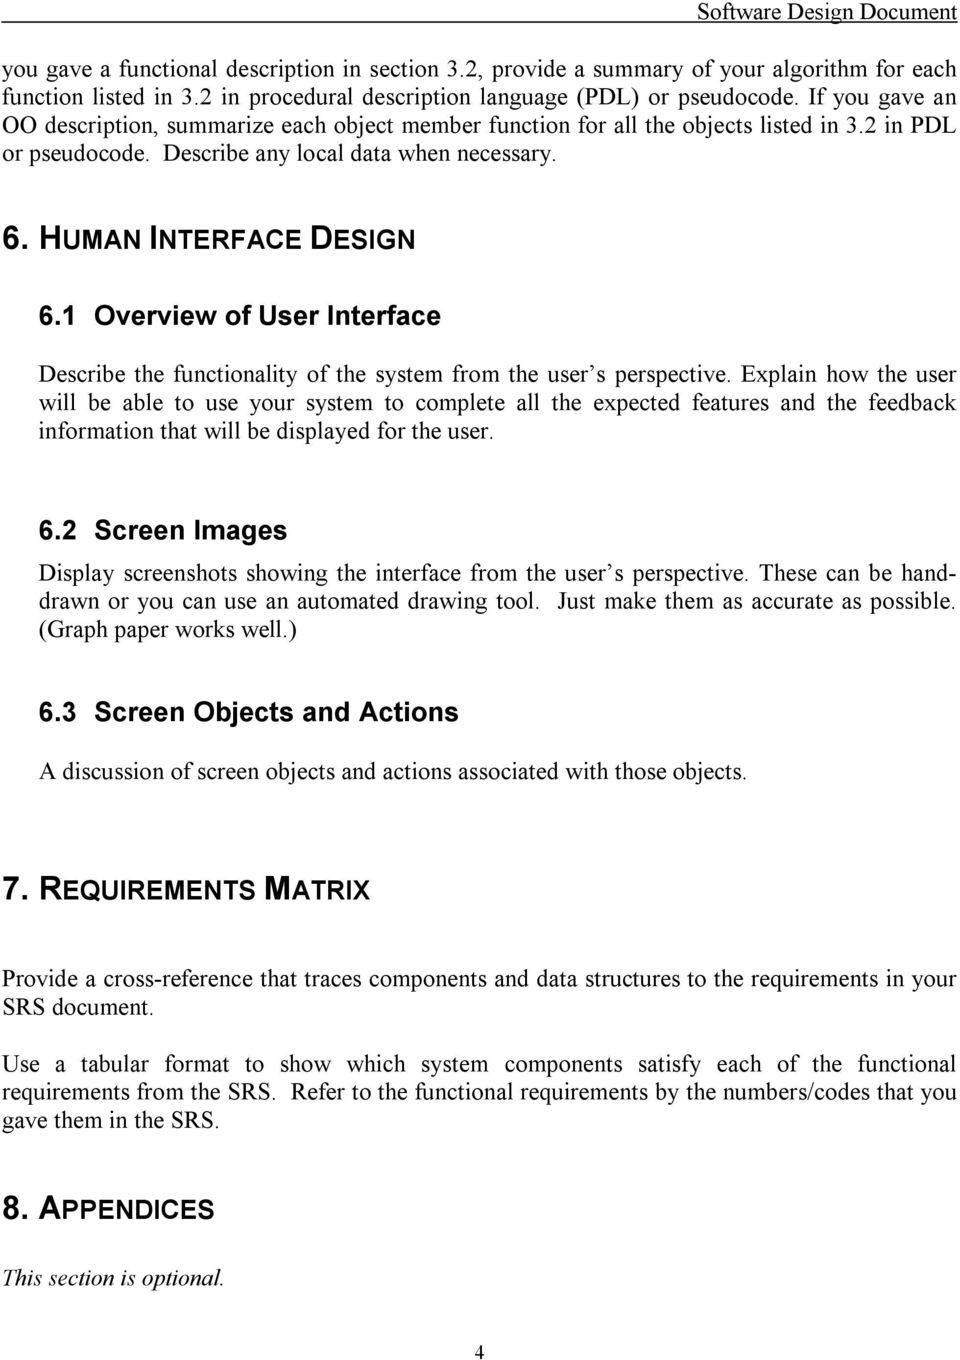 Software Design Document Sdd Template Pdf Free Download